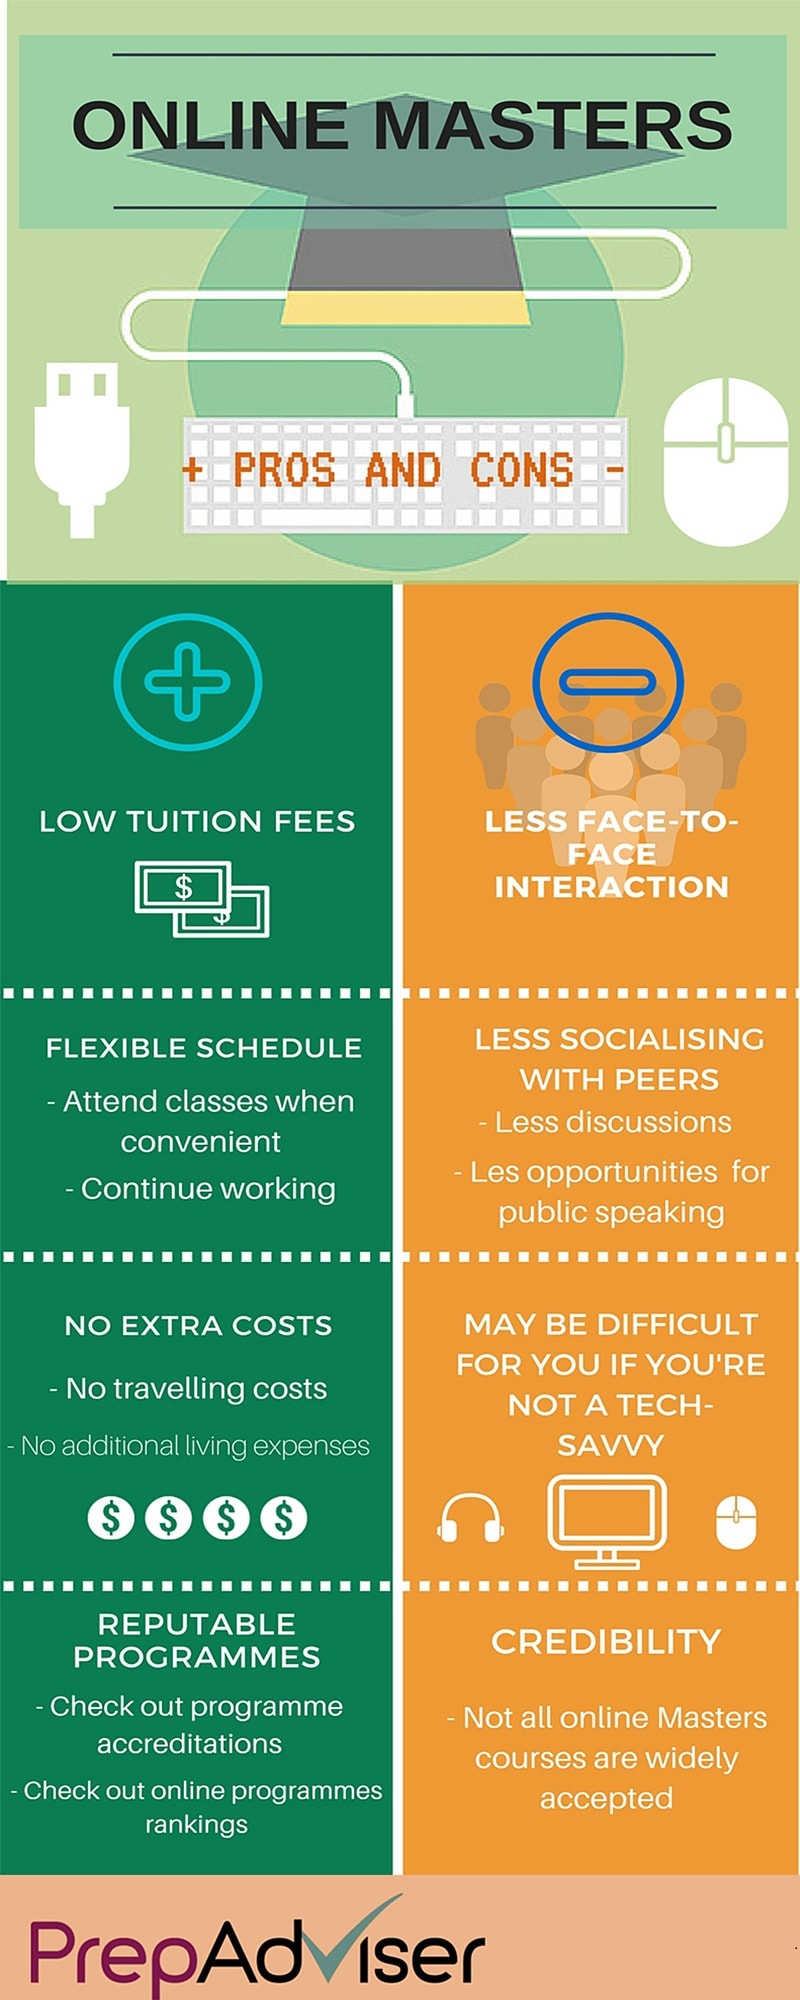 Pros and Cons of Online Masters Programmes PrepAdviser Infographic